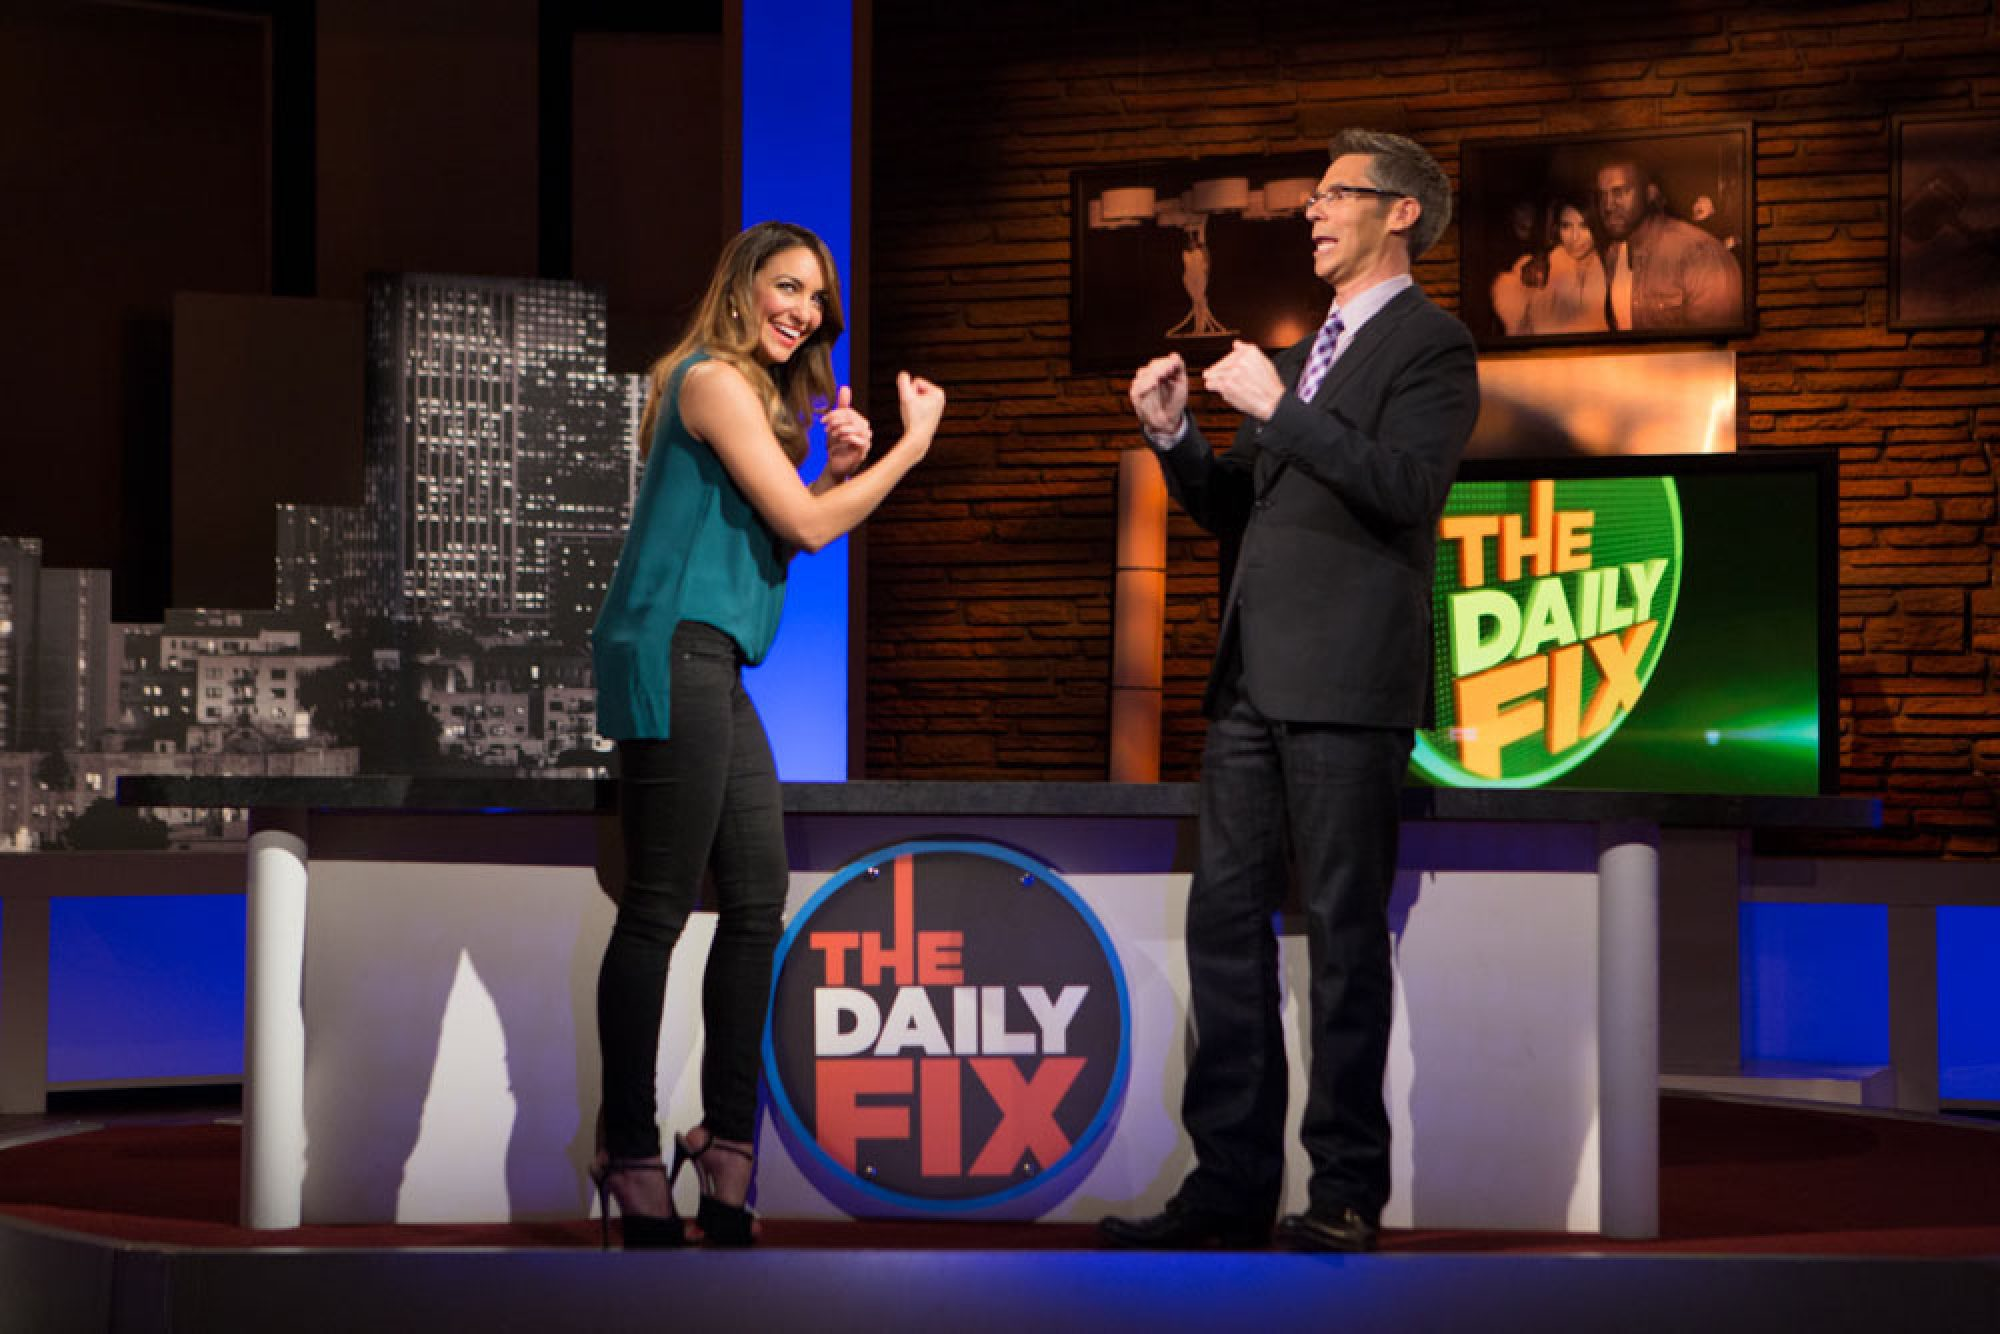 CBS- The Daily Fix